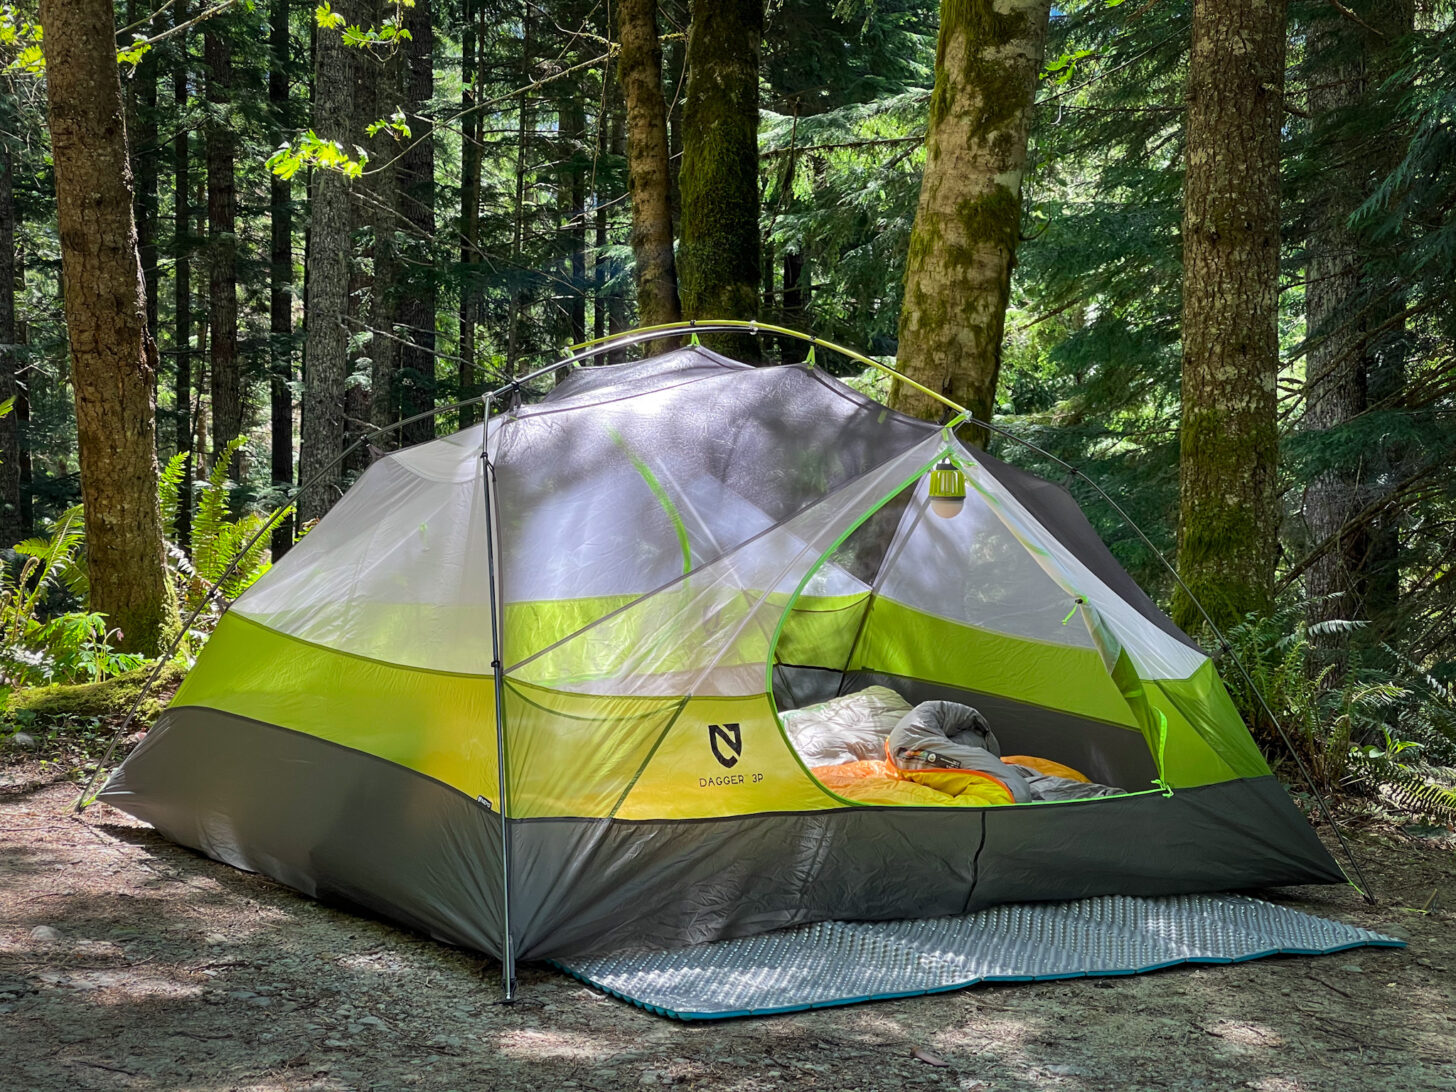 A wide shot of the shelter set up in a lush forest.